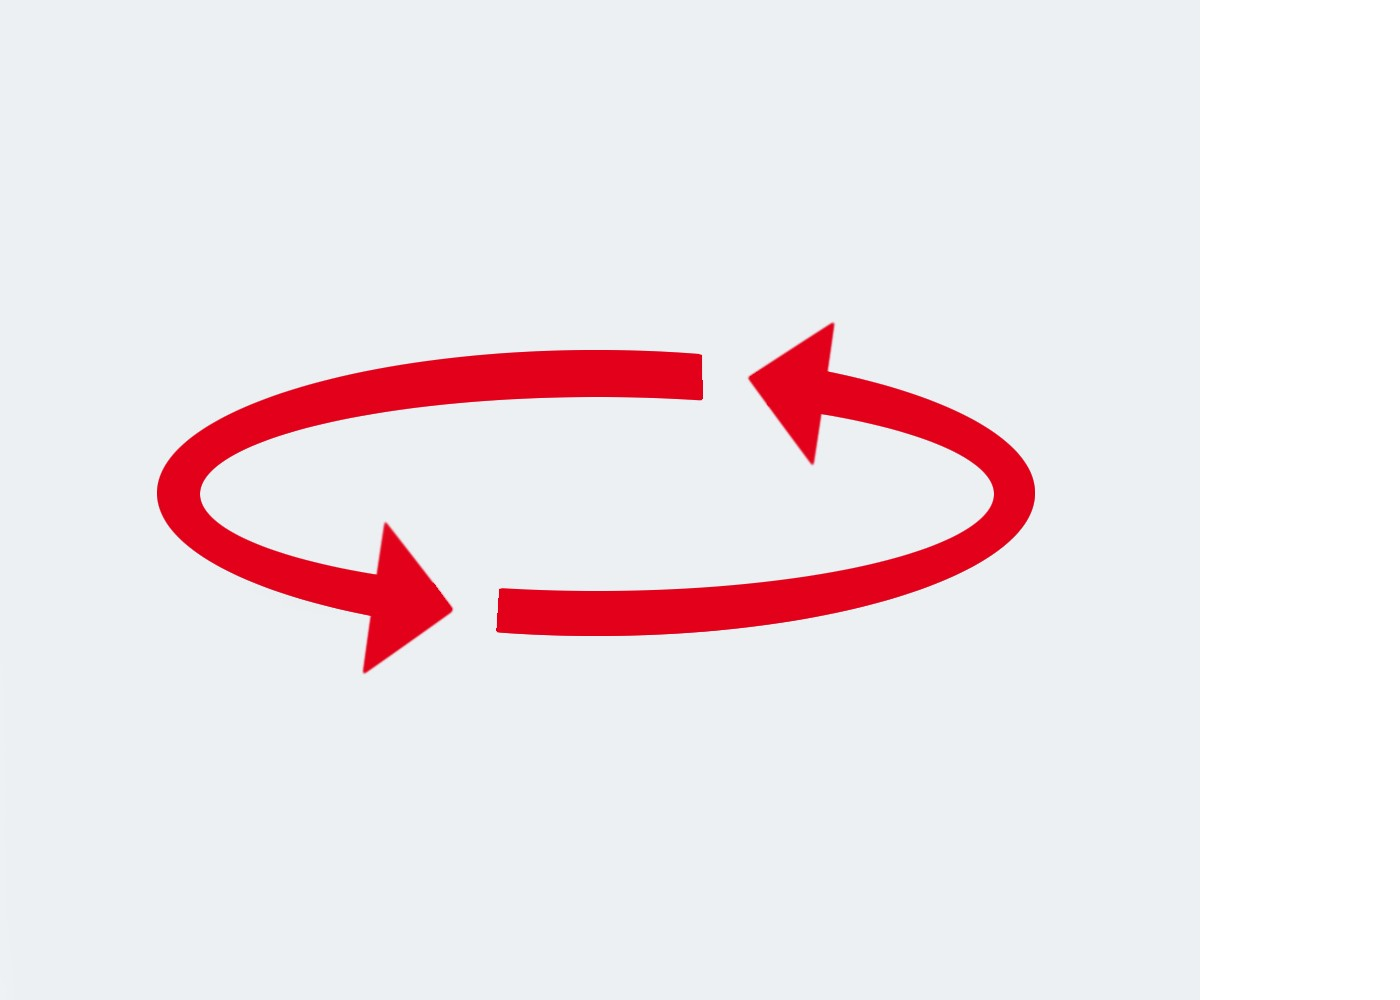 Two red circular arrows, referring to Step 2 of the LOCTITE Circular Sealing System for metal vacuum impregnation.